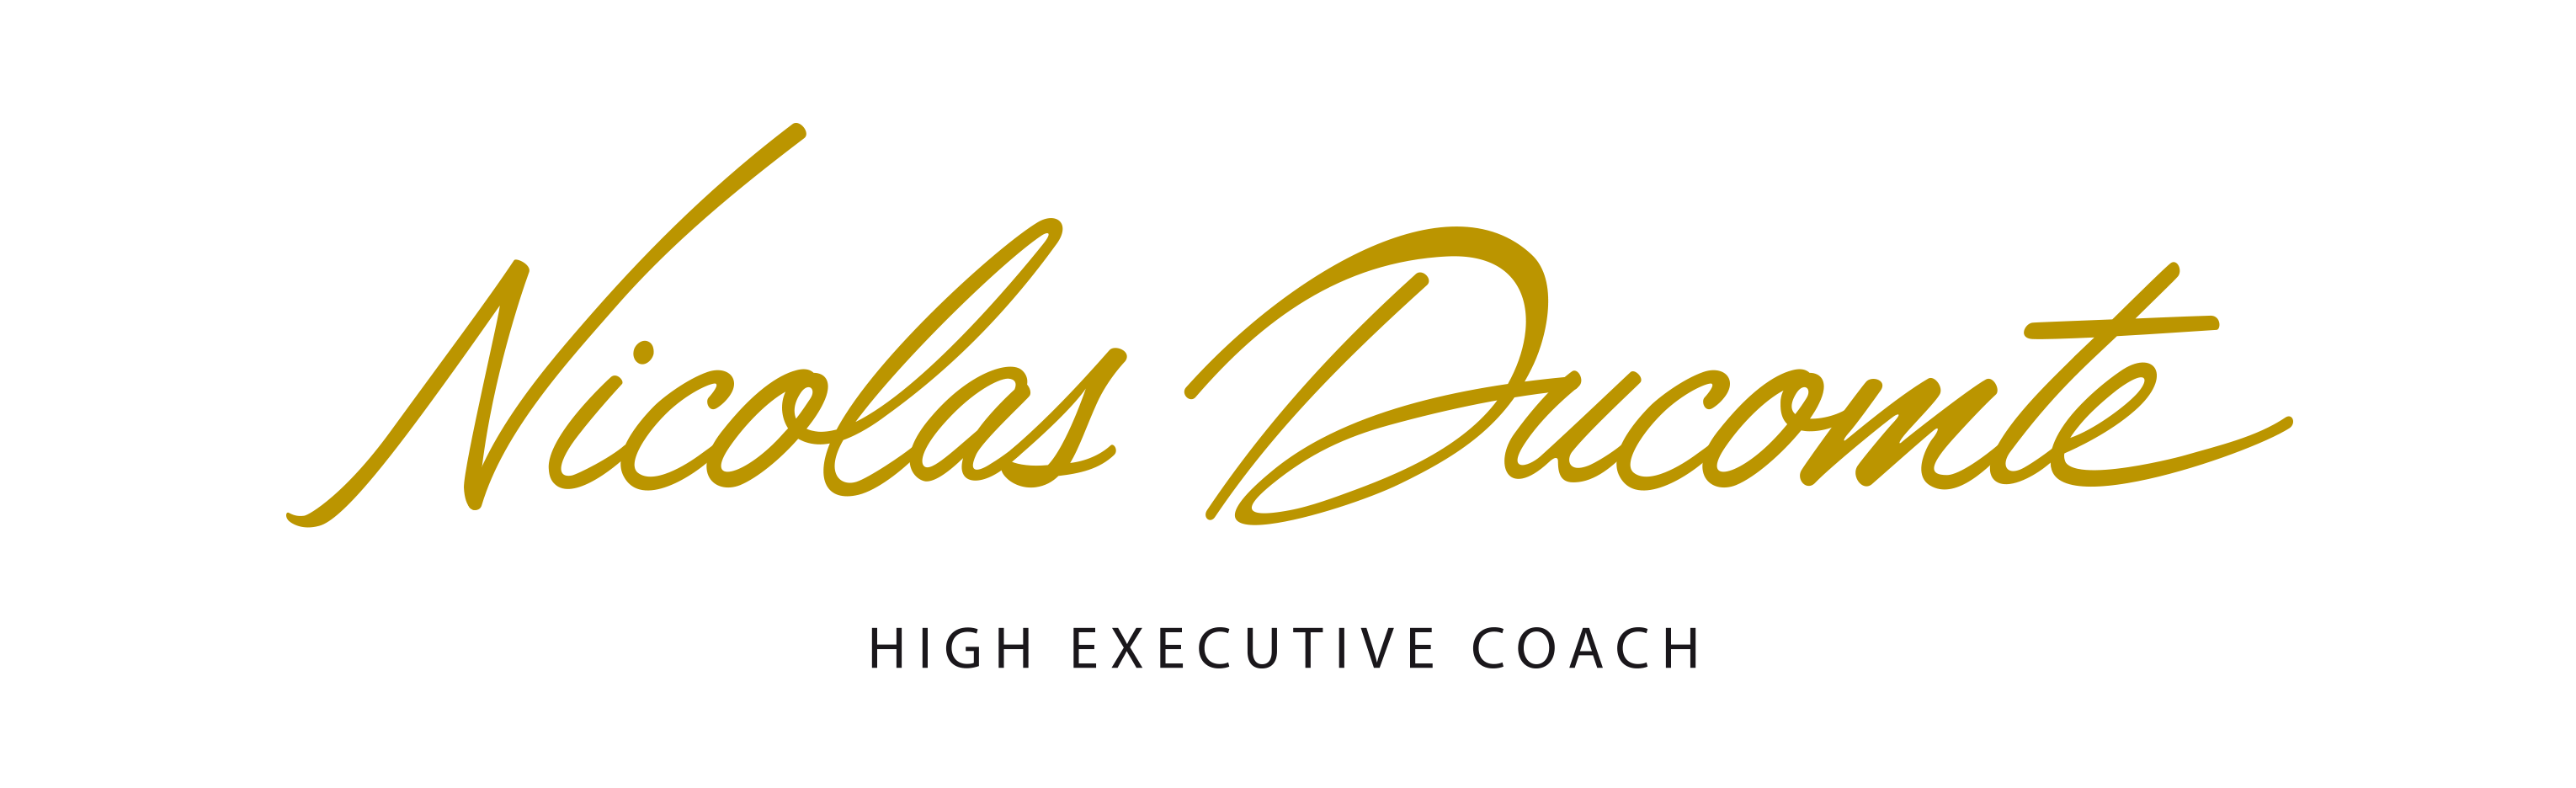 Nicolas DUCOMTE High Executive Coach